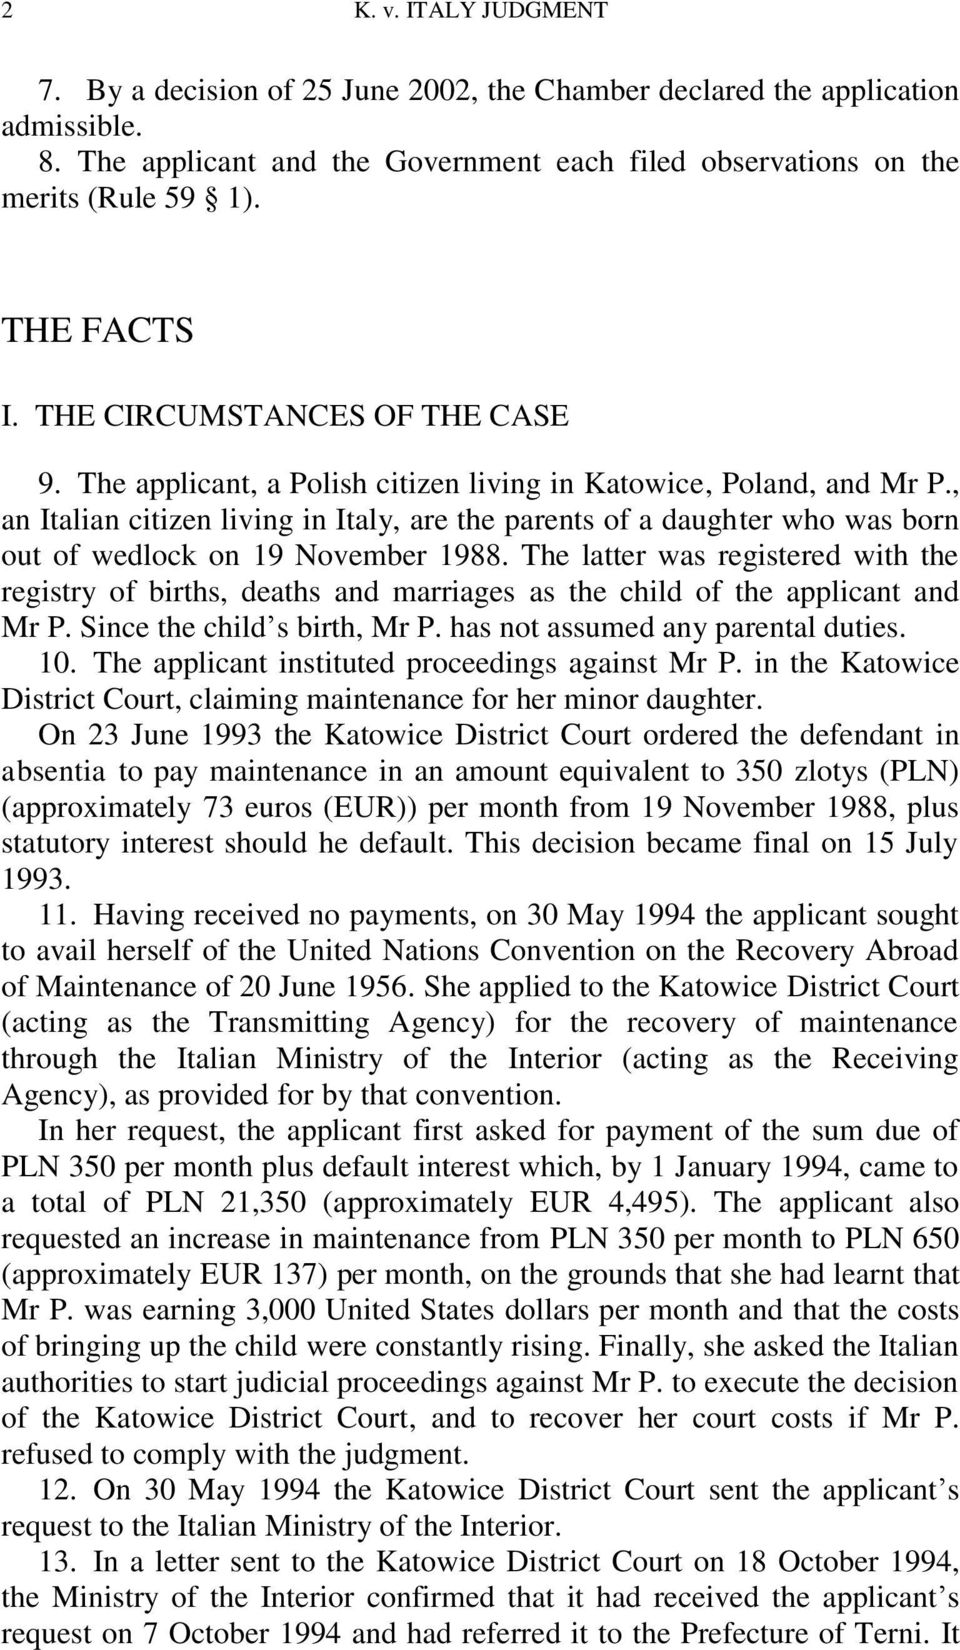 , an Italian citizen living in Italy, are the parents of a daughter who was born out of wedlock on 19 November 1988.